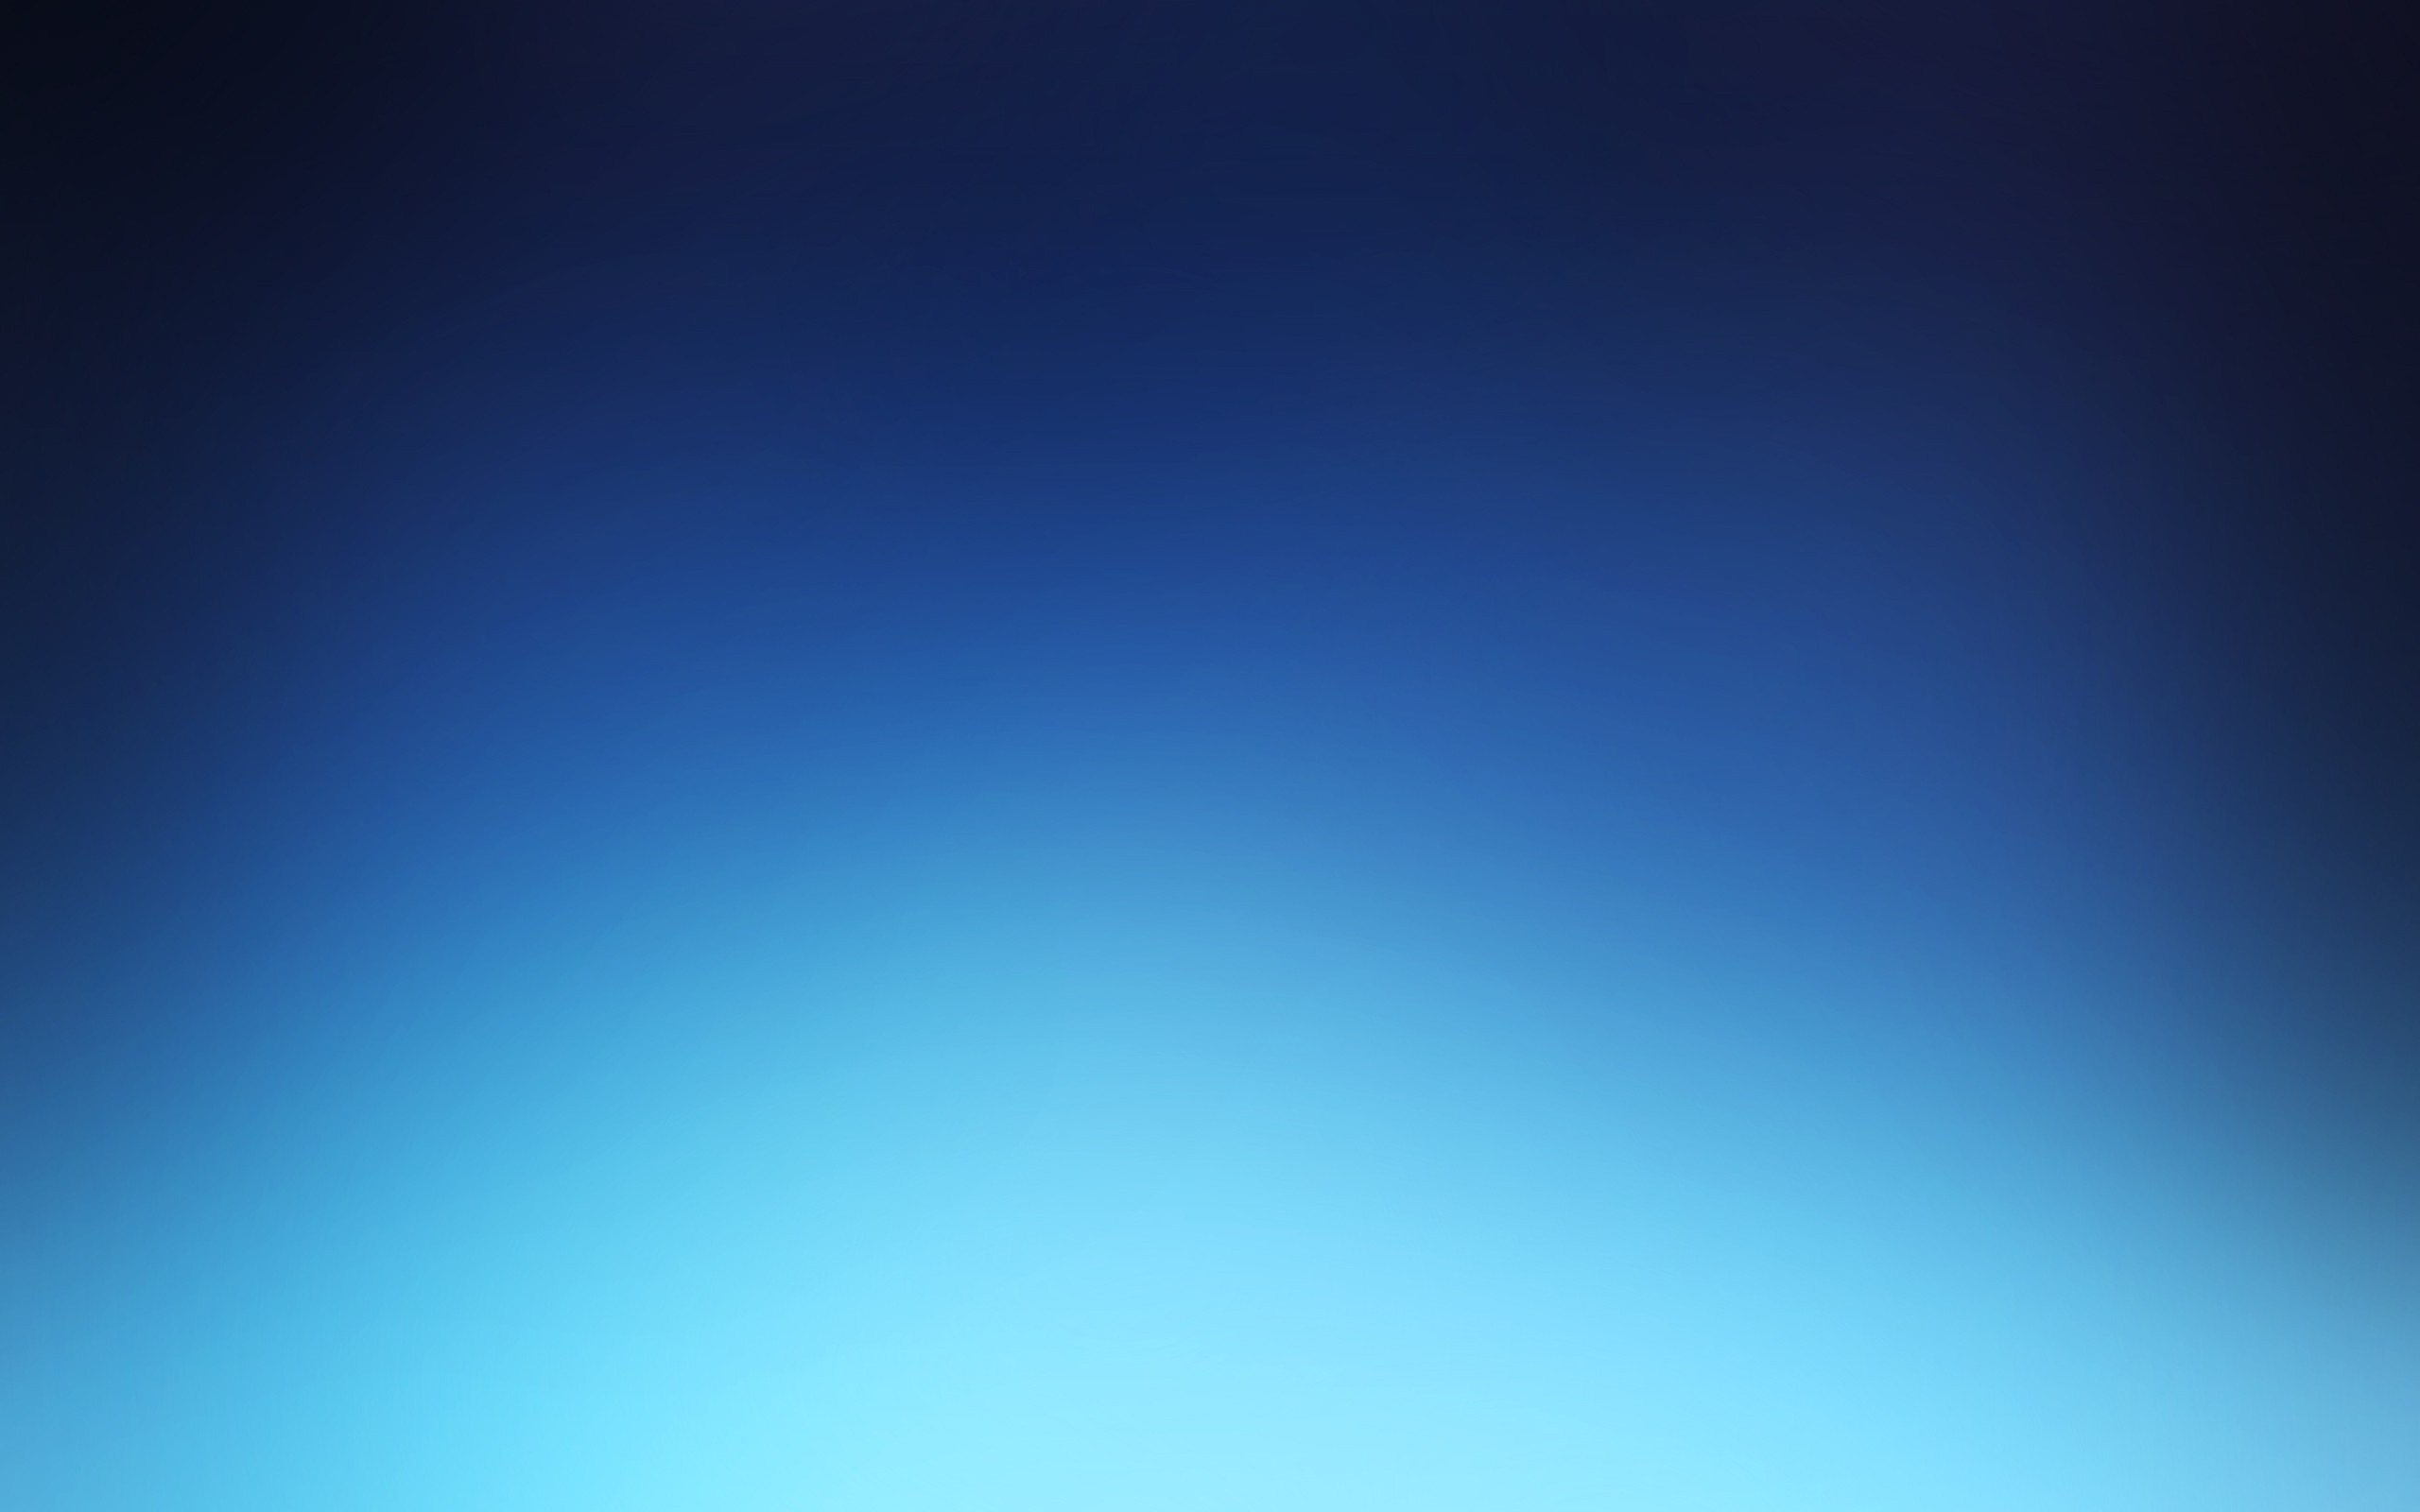 Lacoste Iphone Wallpaper Blue Vignetting Wallpapers Blue Vignetting Stock Photos